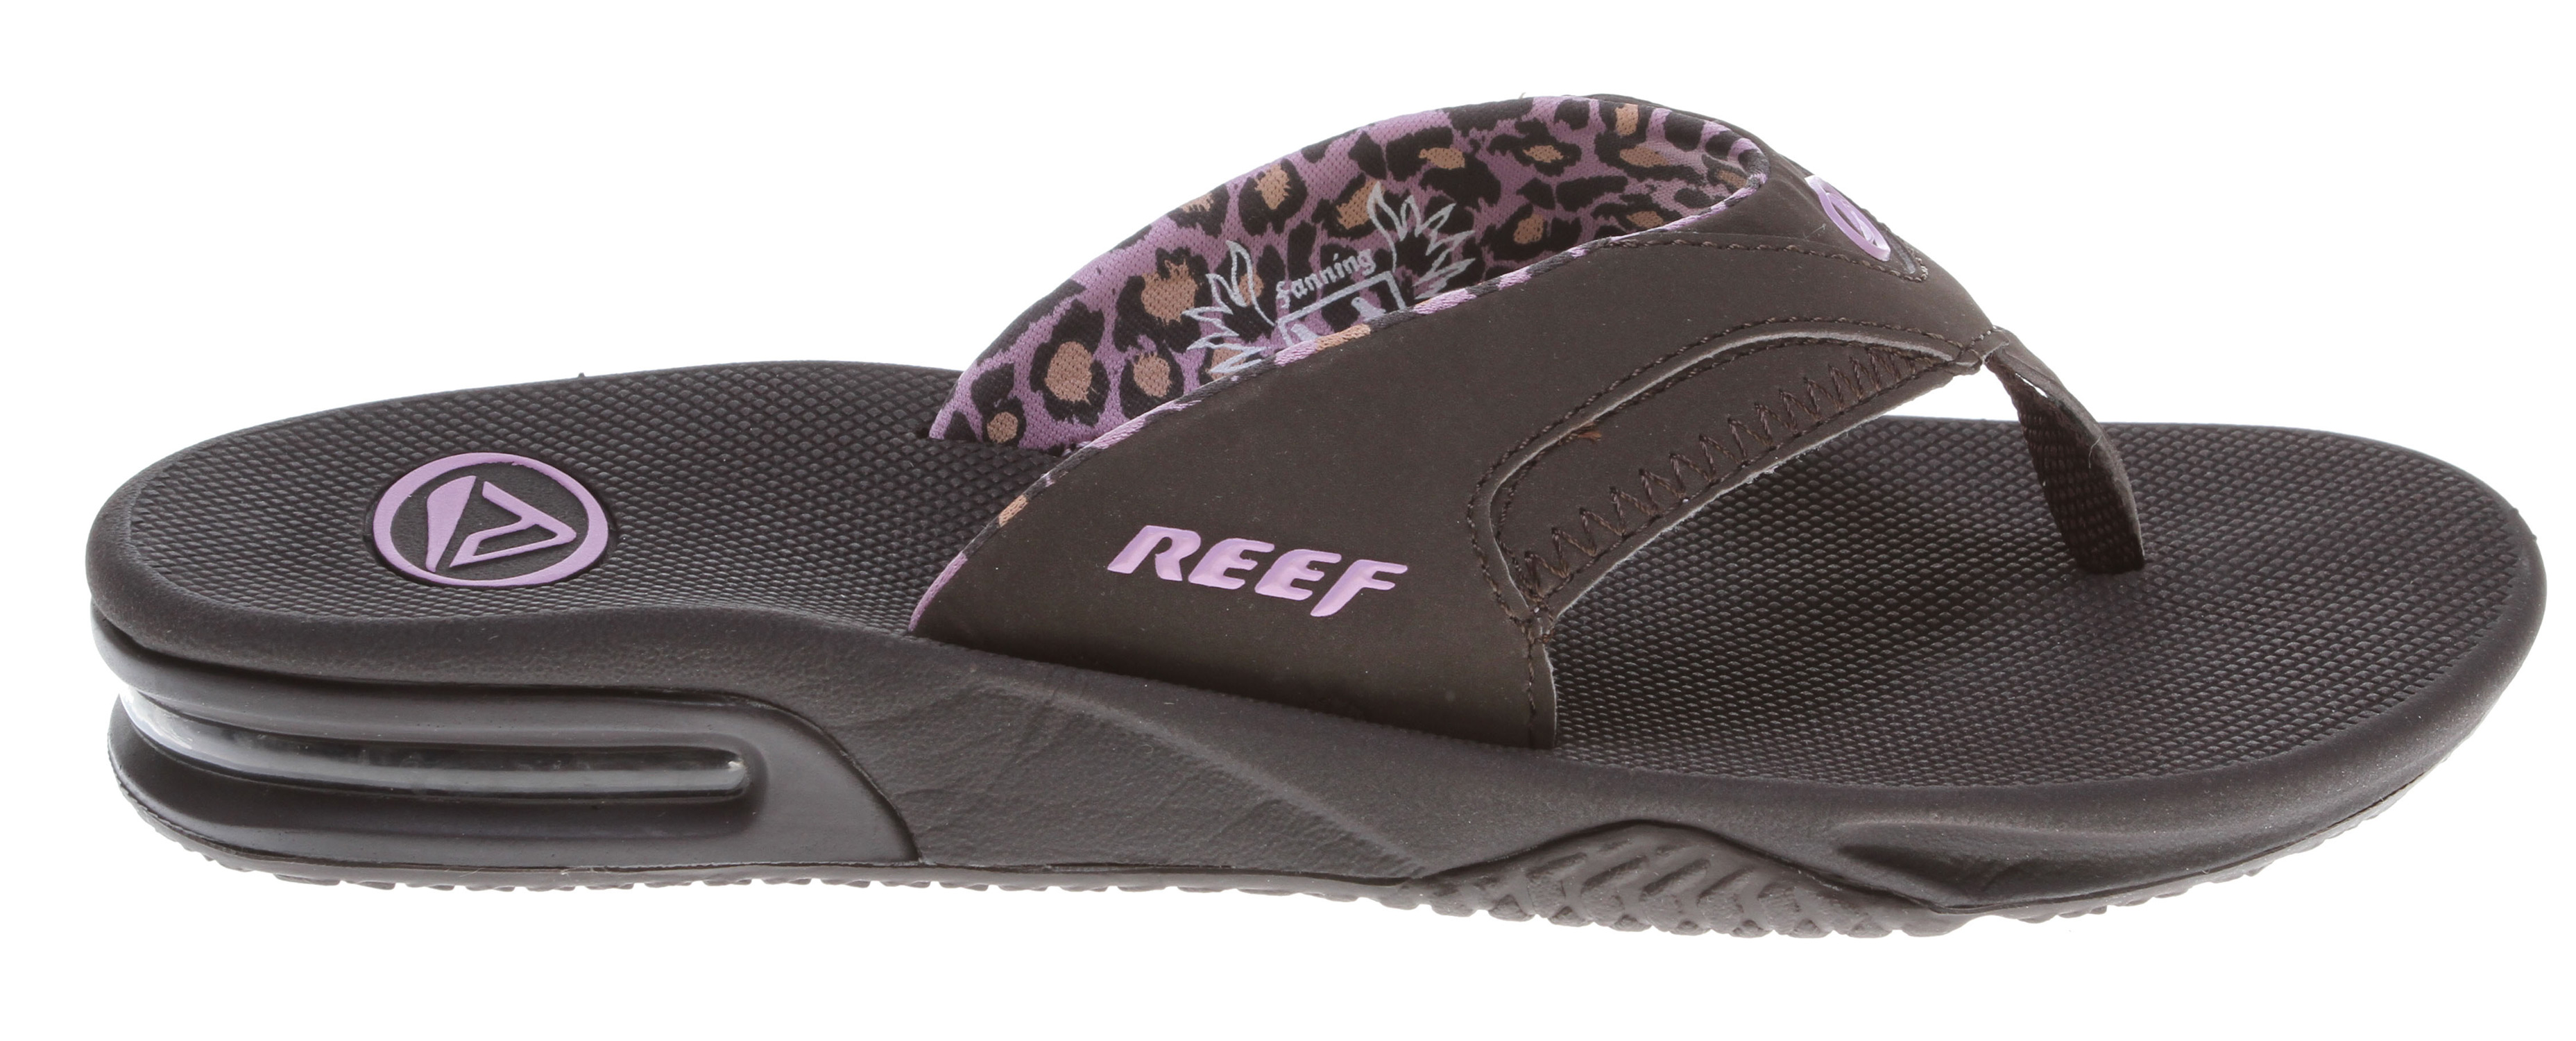 "Surf Key Features of the Reef Fanning Sandals: Reef Best Seller Girl's Sporty Sandal Mick Fanning's signature design Water-friendly synthetic nubuck upper Contoured EVA footbed with anatomical arch support Full 360 degree heel airbag enclosed in soft polyurethane Bottle opener to open your ""soda"" bottle - $27.95"